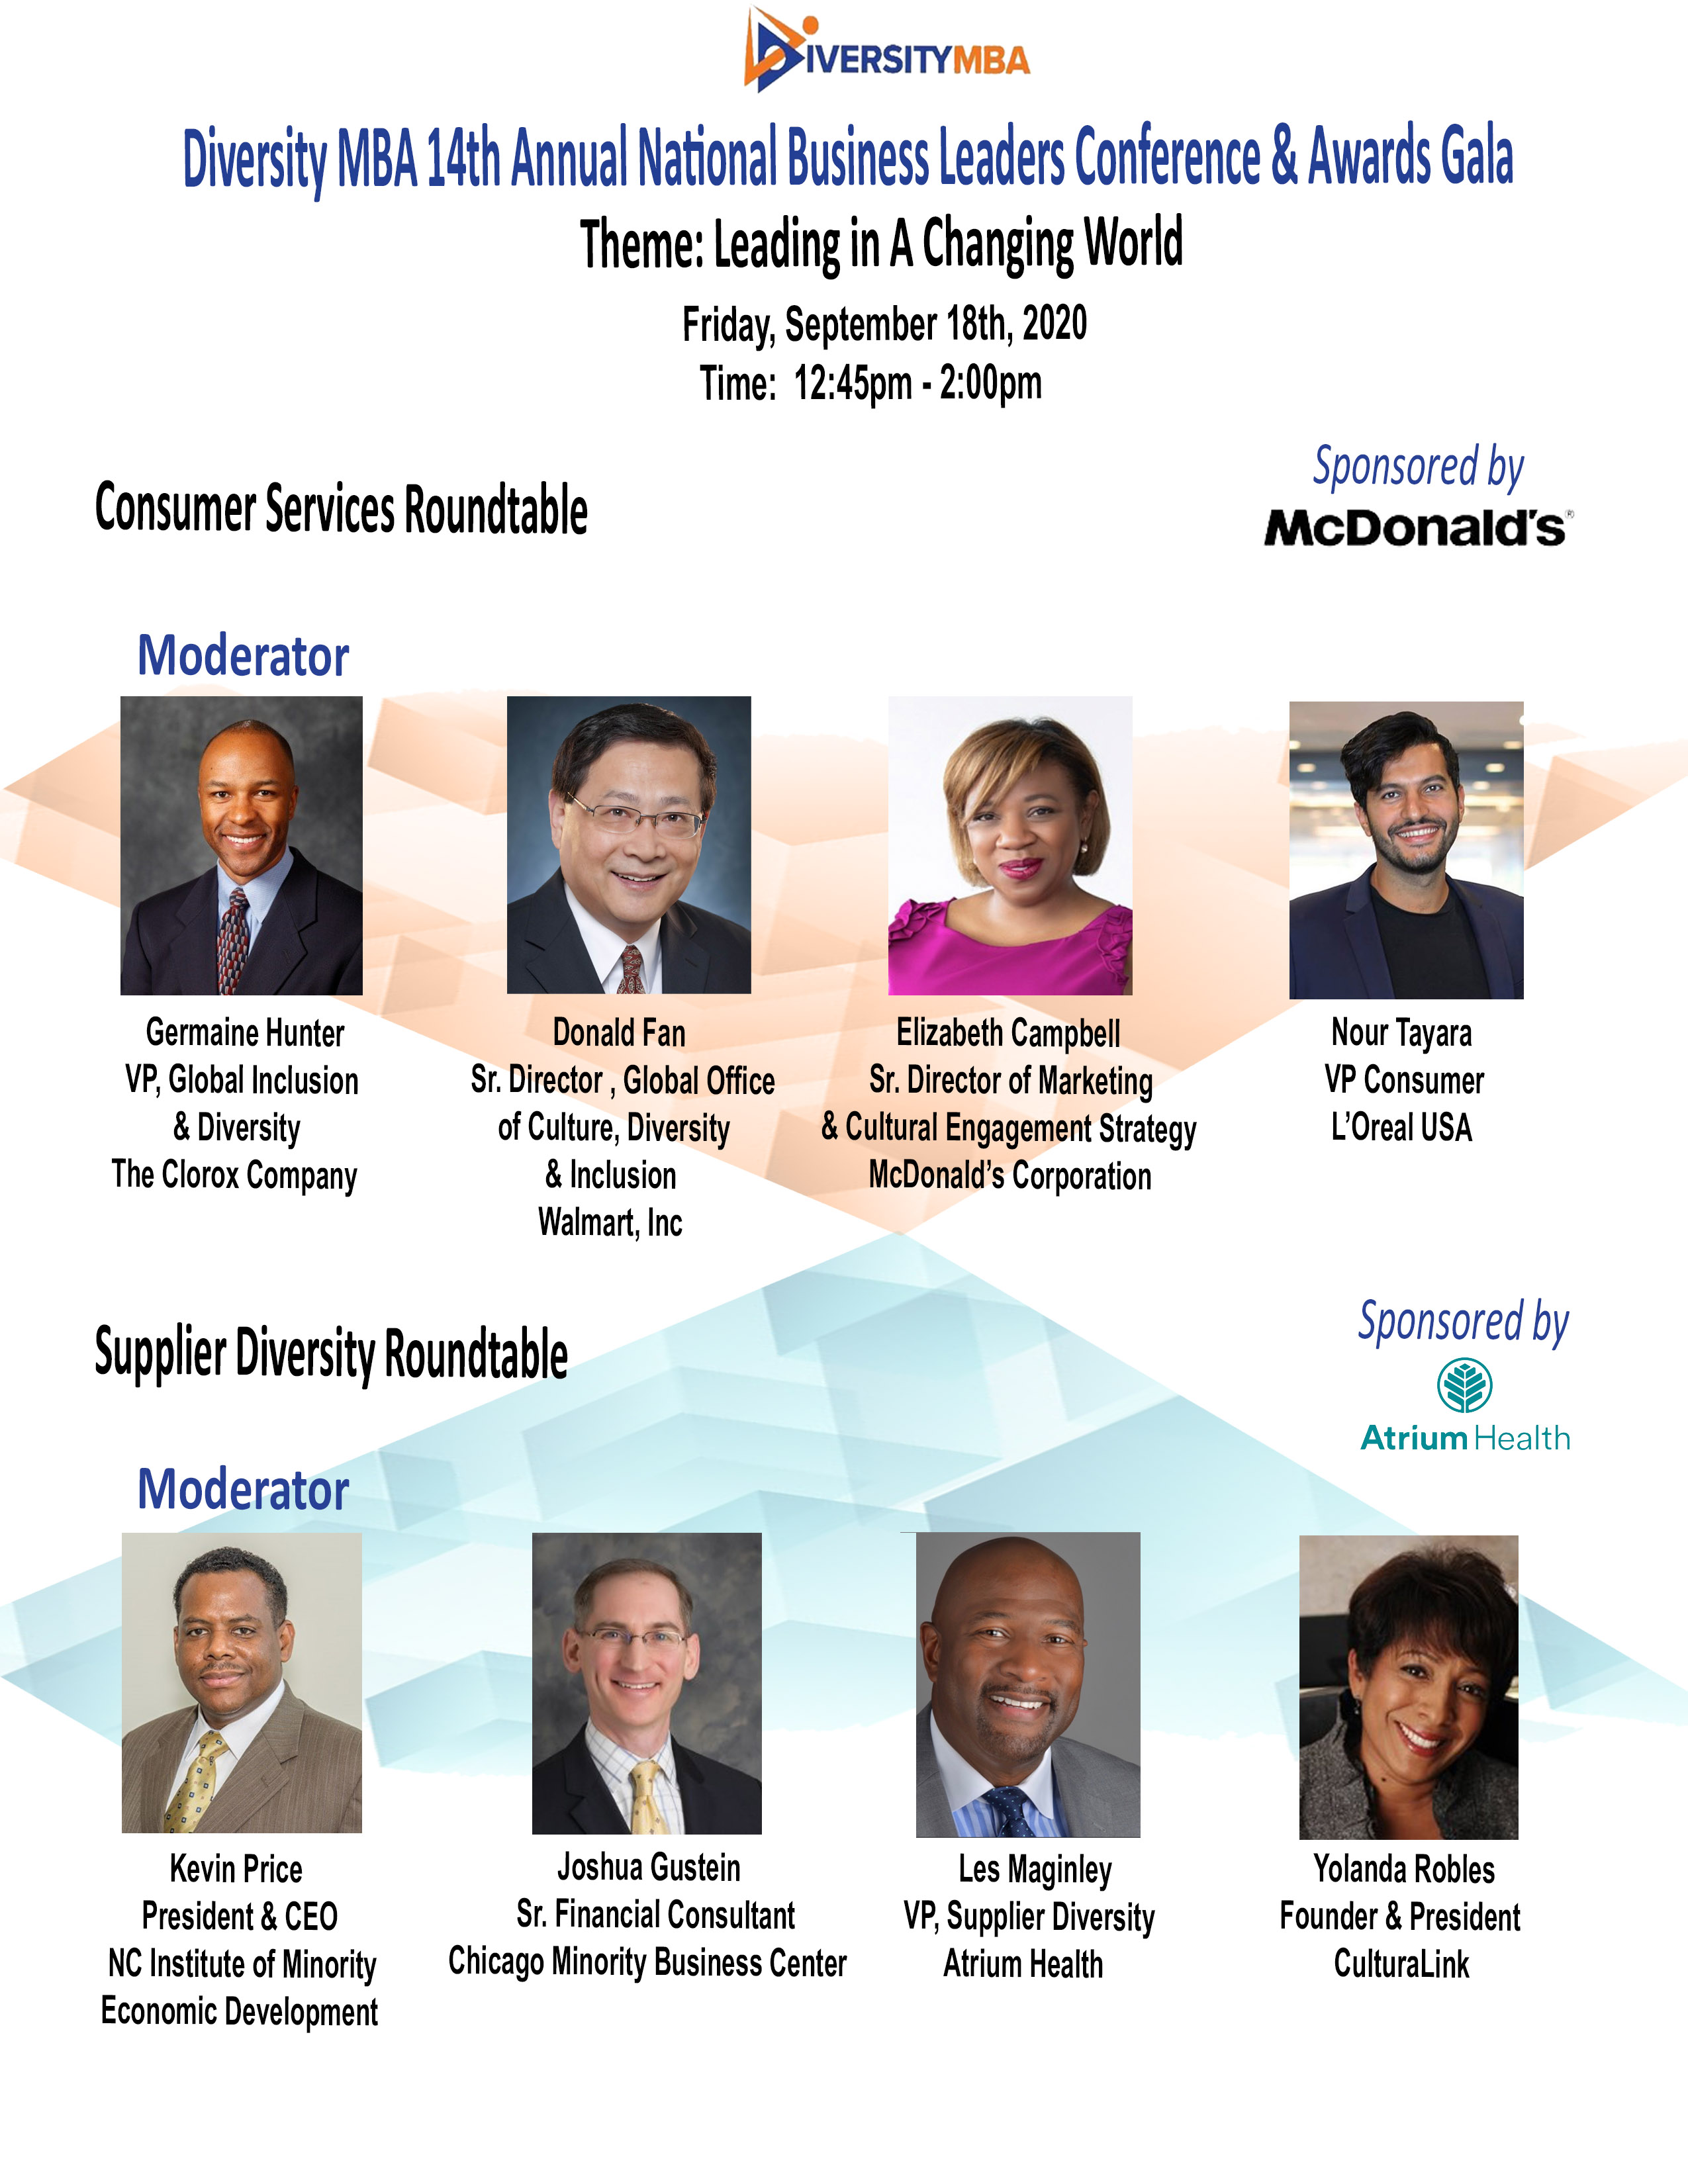 Consumer & Supplier Diversity Roundtable